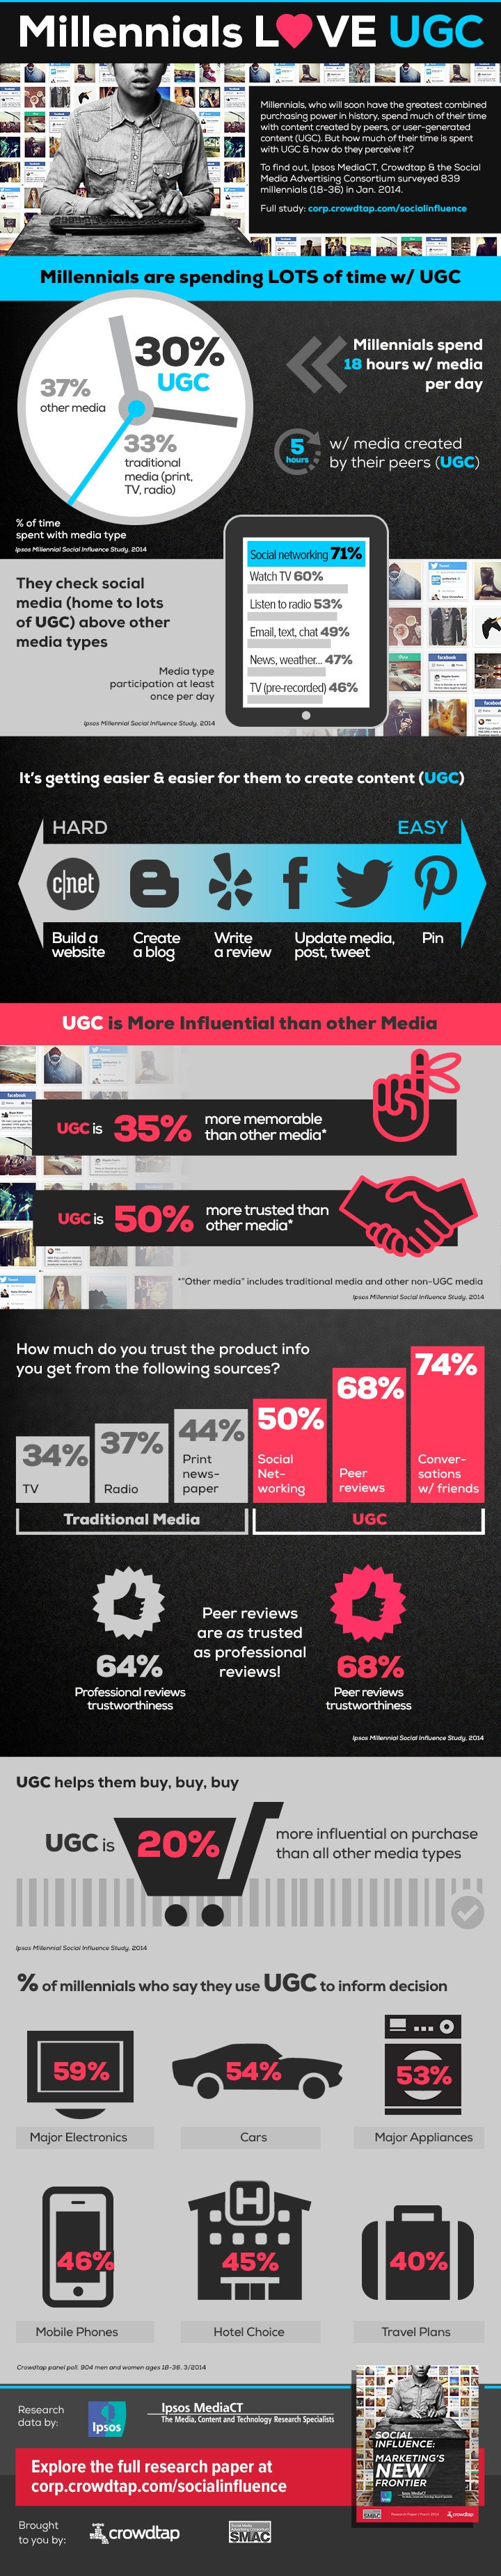 Millennials Love User Generated Content - infographic